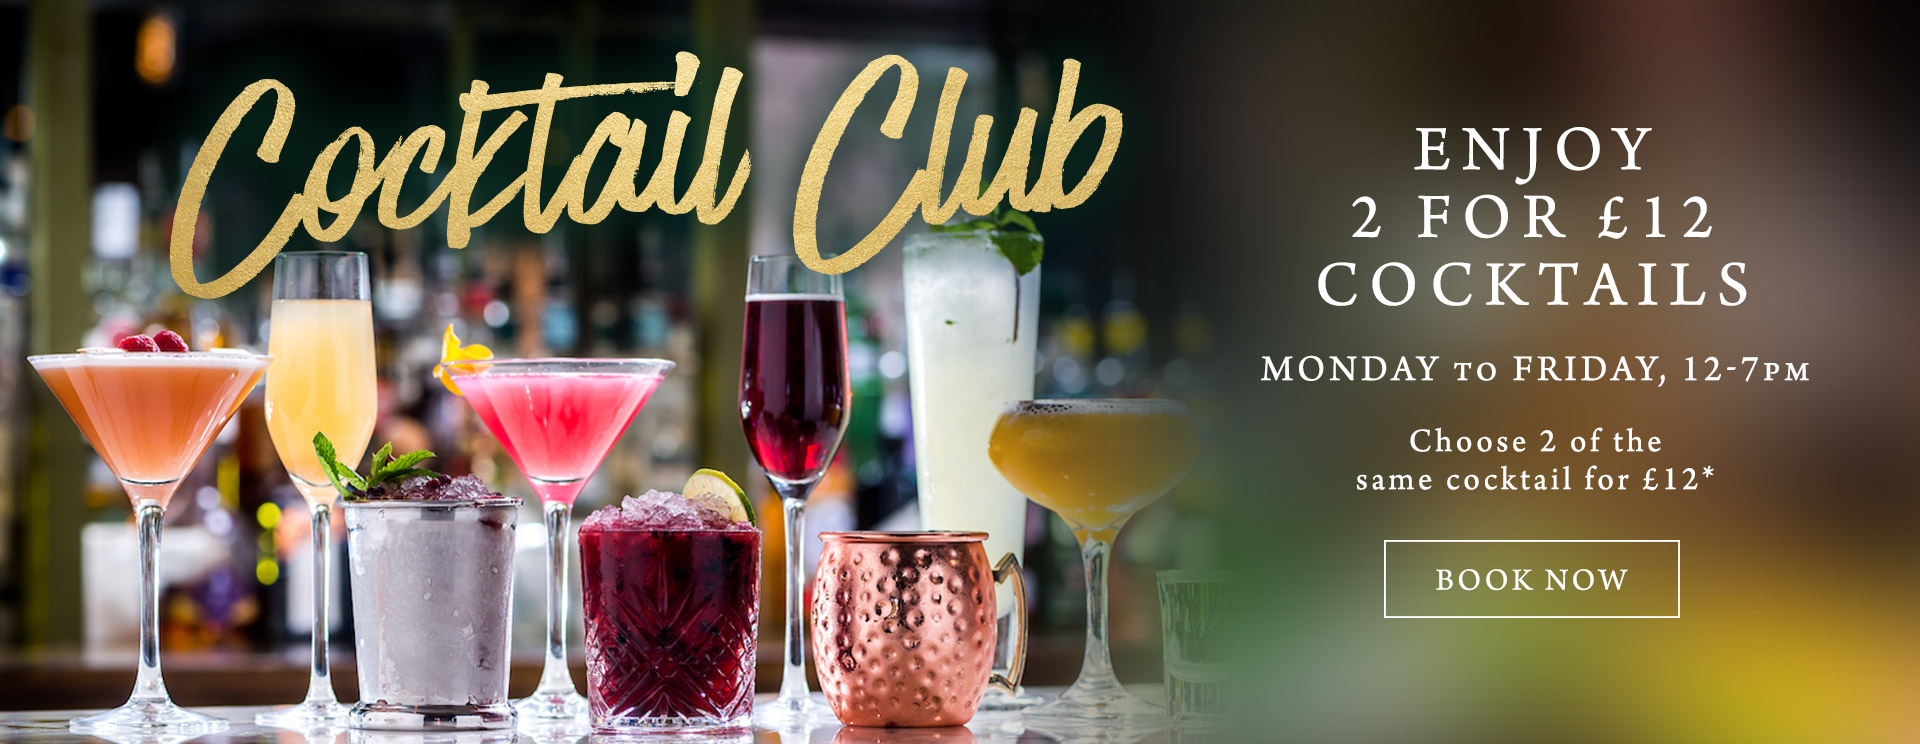 2 for £12 cocktails at The Wotton Hatch